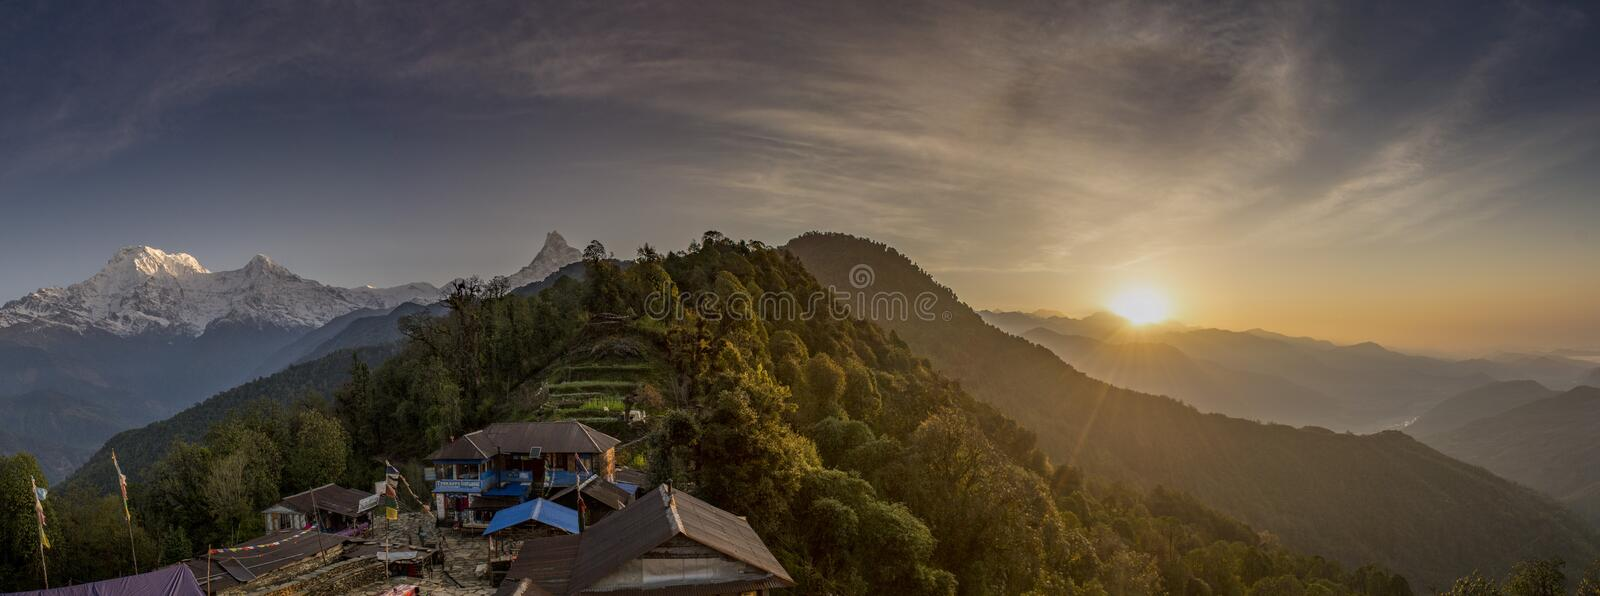 Beautiful panoramic sunset landscape with guest house located in the Himalaya mountains stock photos